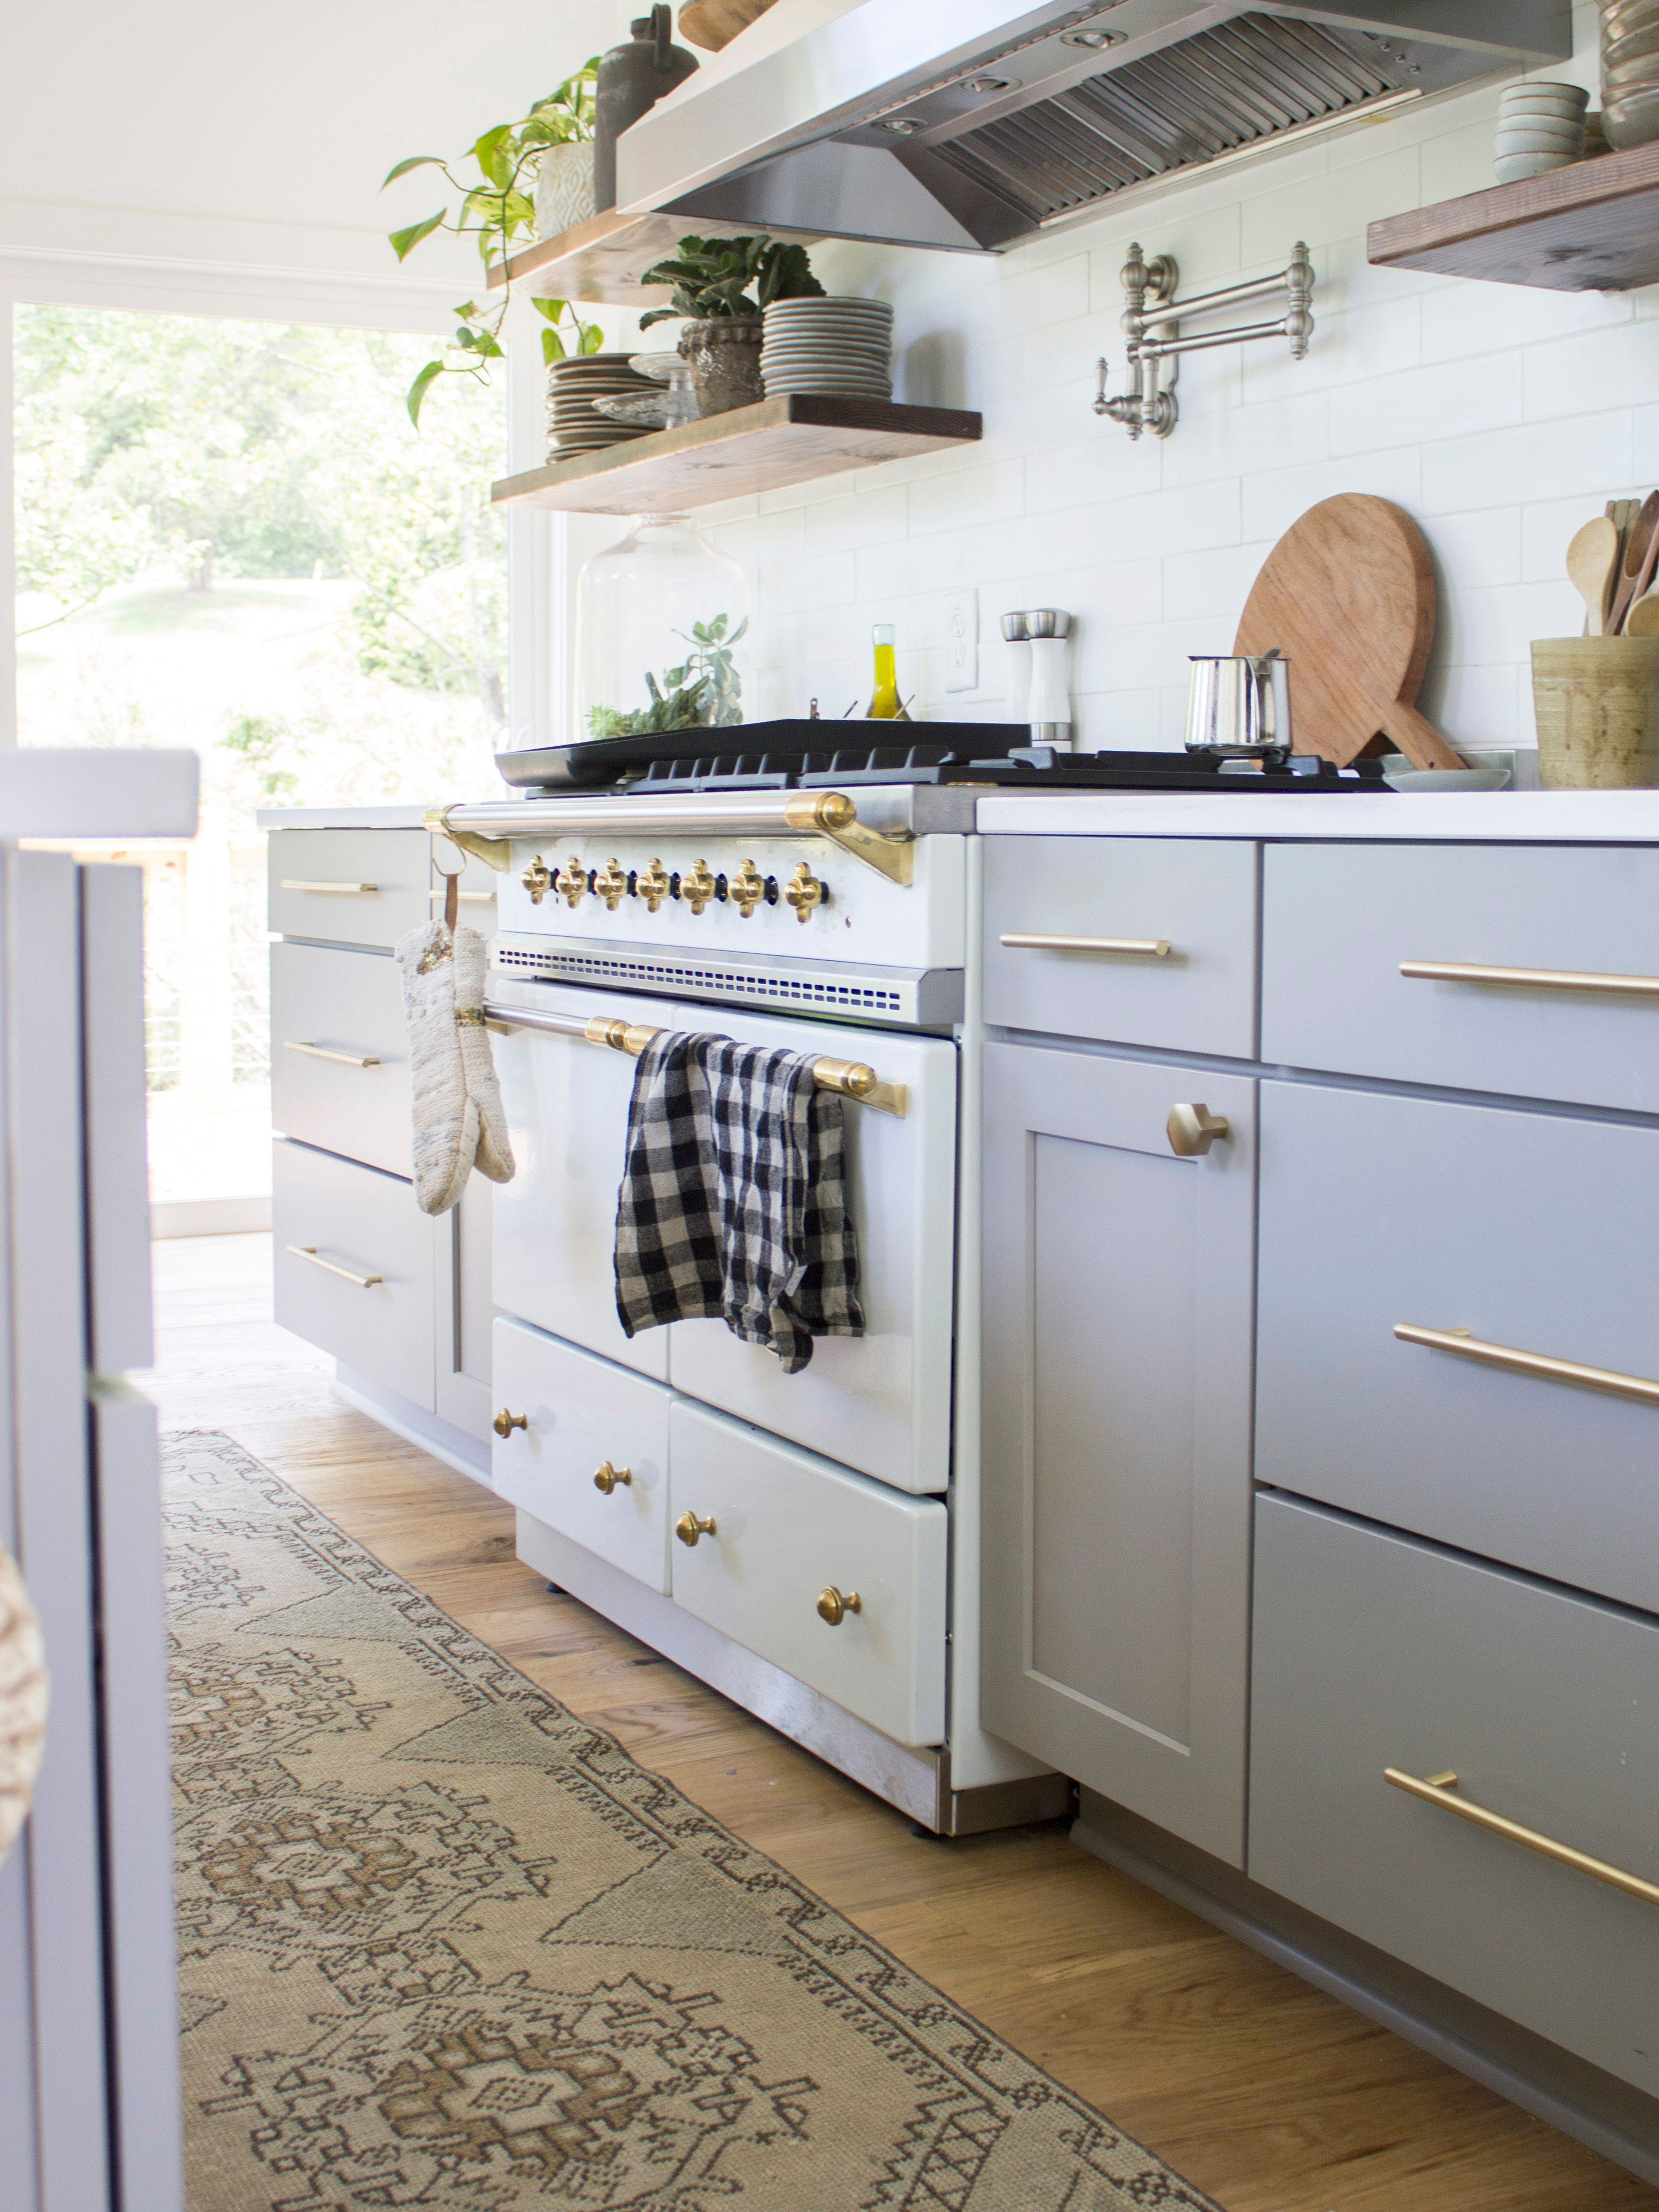 The One Easy Home Upgrade That'll Make a Huge Difference